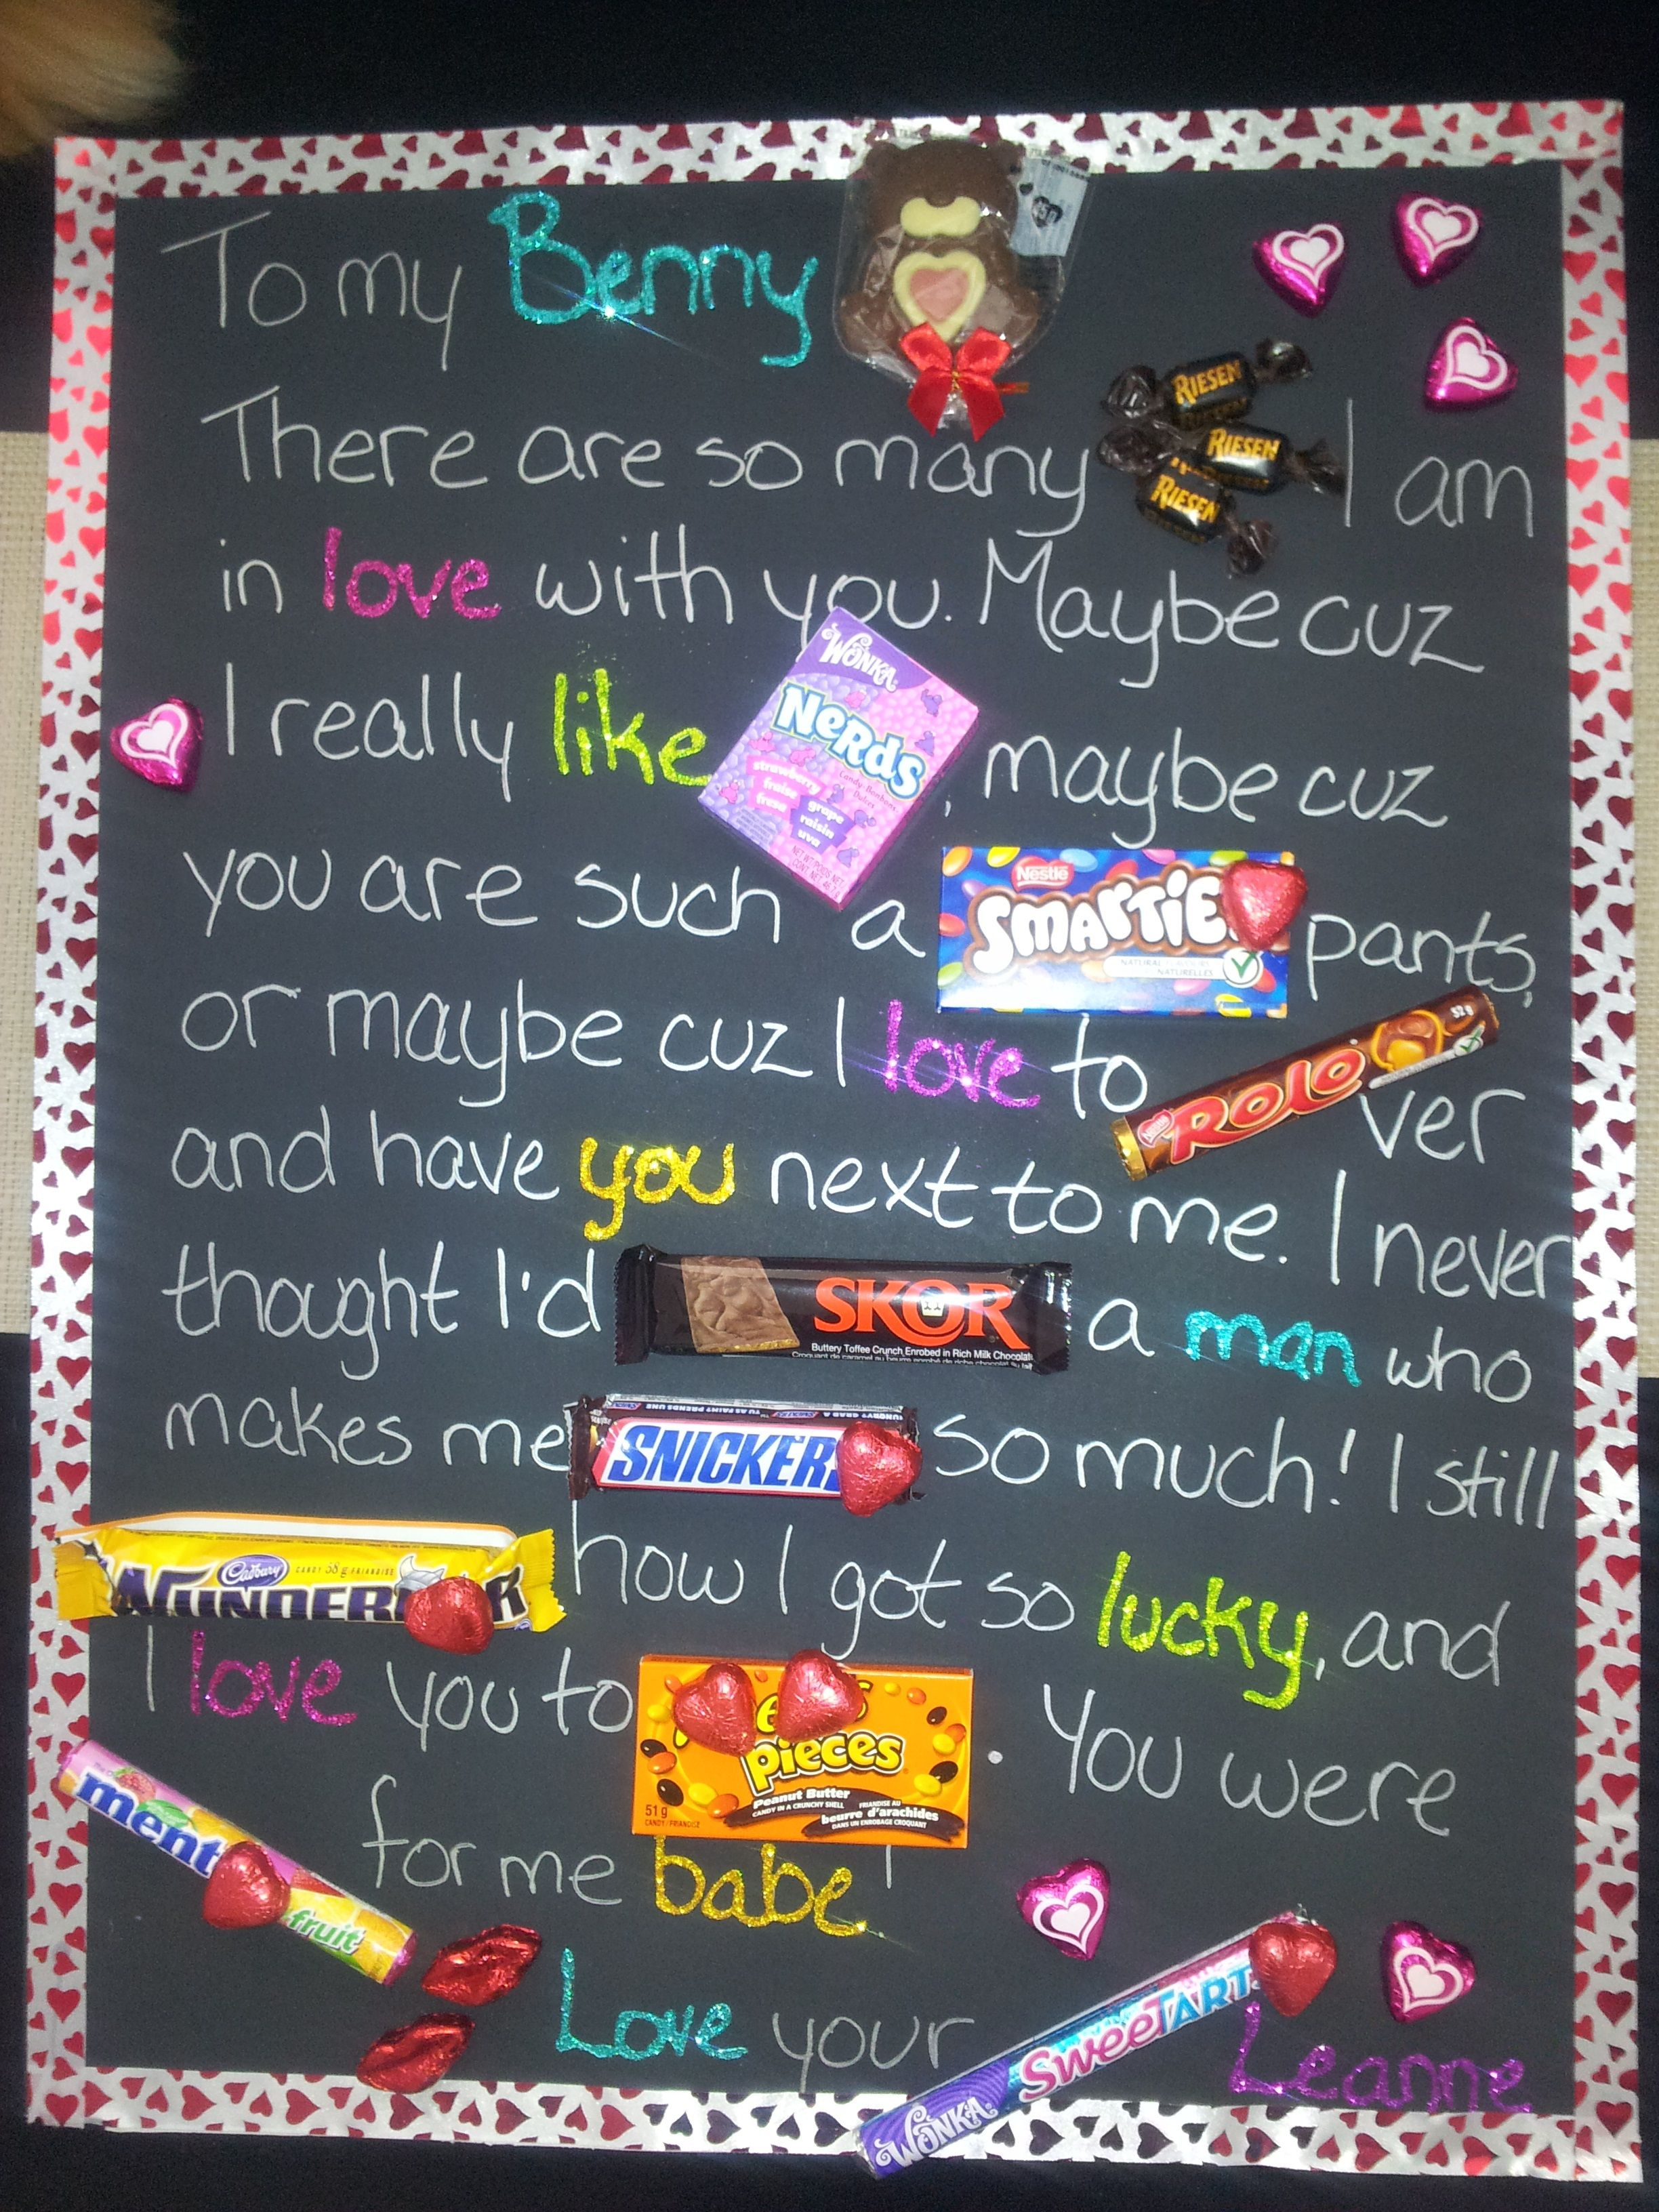 My Valentines Candy Love Letter made using black poster board